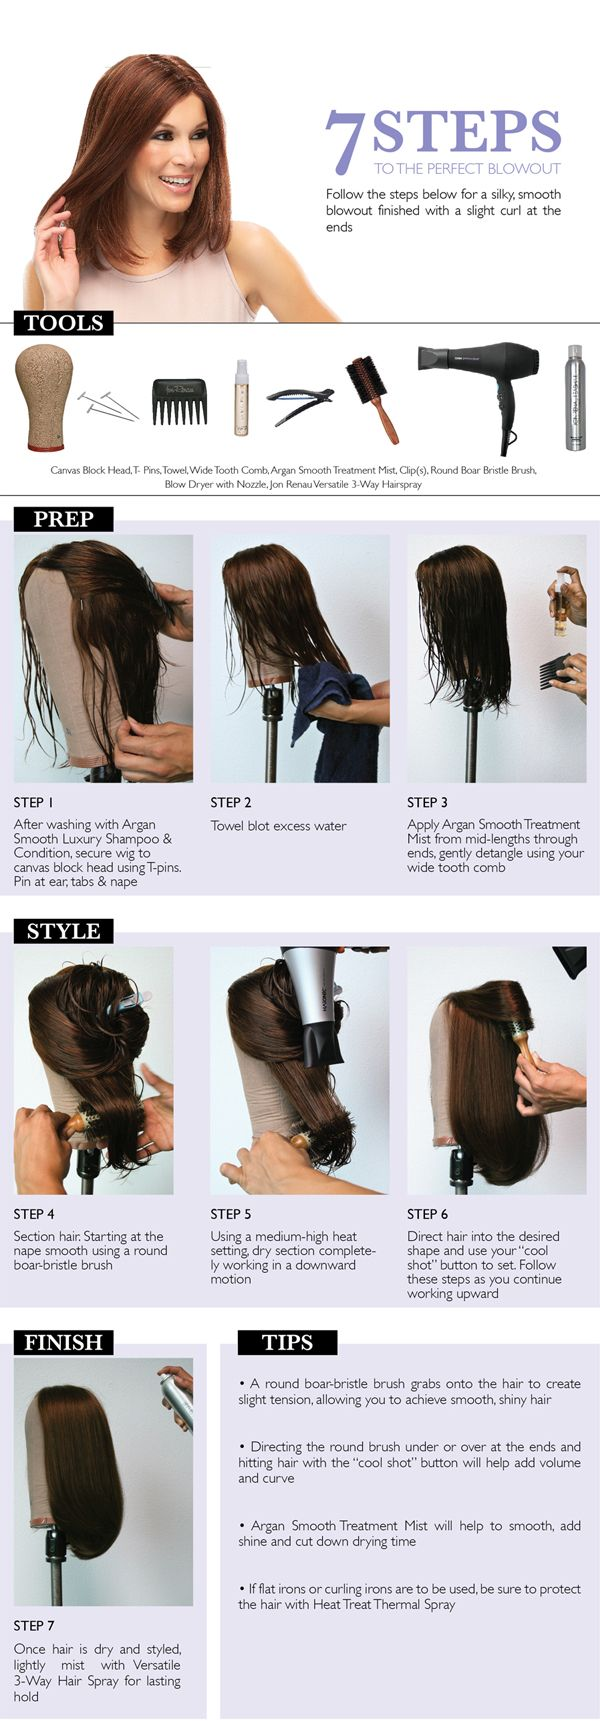 7  Steps to a Beautiful Human Hair Blowout Shop our Remy Human Hair Hand Tied Jon Renau Wigs http://www.pharmathera.com/wigs-hair-extensions-hairpieces-hats-chemotherapy-cancer/wigs-human-synthetic-hair-women-men-kids/wigs-for-women-canada#/hair-type-remy-human-hair-a33-vRemy%20Human%20Hair/hand-tied-hand-tied-a30-vHand%20Tied/sort=p.sort_order/order=ASC/limit=16